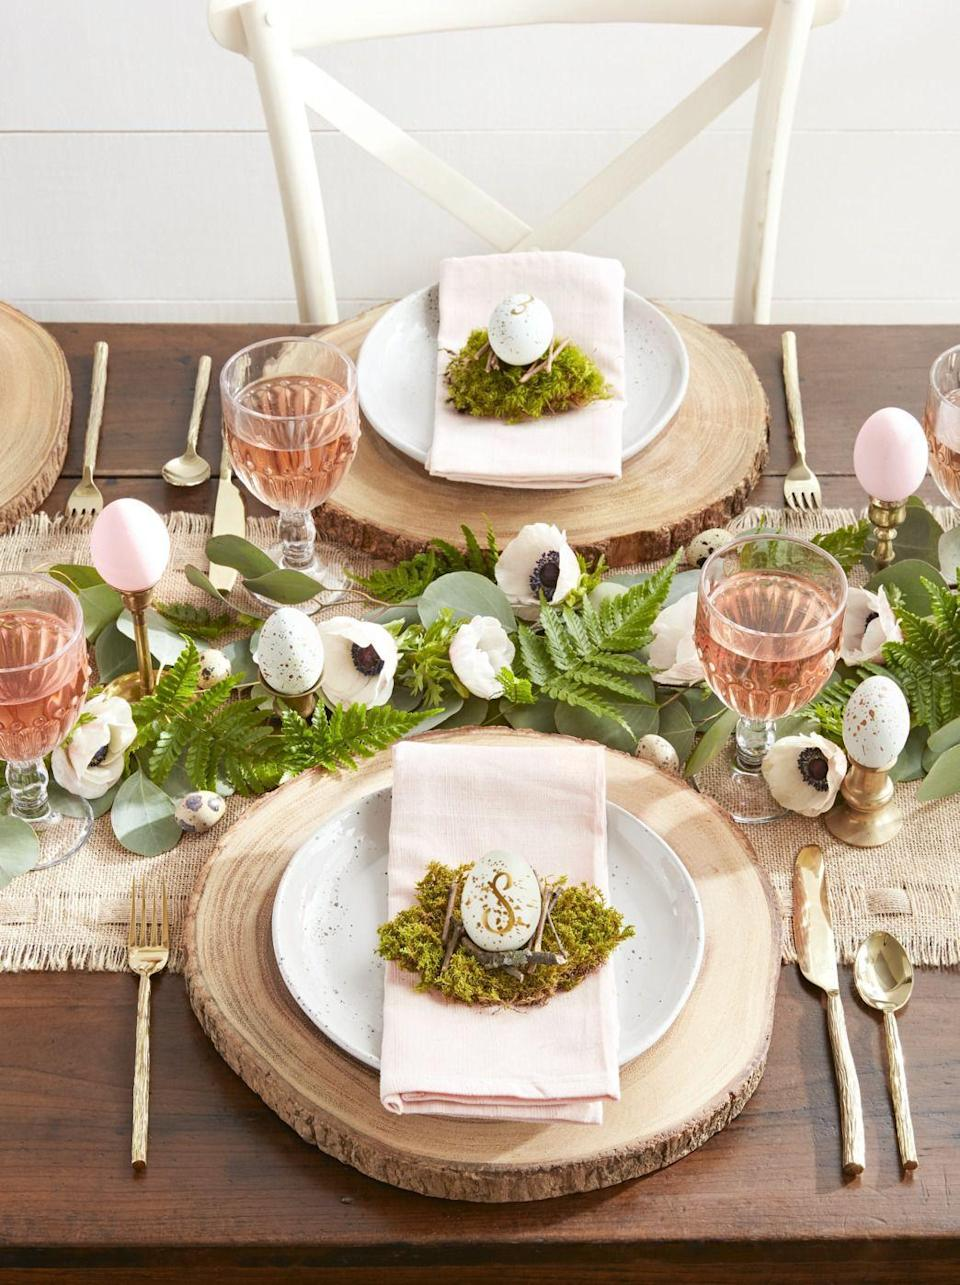 """<p>To give this homey, woodland spread a classic allure, use a gold paint pen to decorate eggs with each guests' monogram.</p><p><a rel=""""nofollow noopener"""" href=""""https://www.amazon.com/Sharpie-Oil-Based-Marker-Medium-Metallic/dp/B00E3XXN68/"""" target=""""_blank"""" data-ylk=""""slk:SHOP GOLD PAINT PENS"""" class=""""link rapid-noclick-resp"""">SHOP GOLD PAINT PENS</a> </p>"""